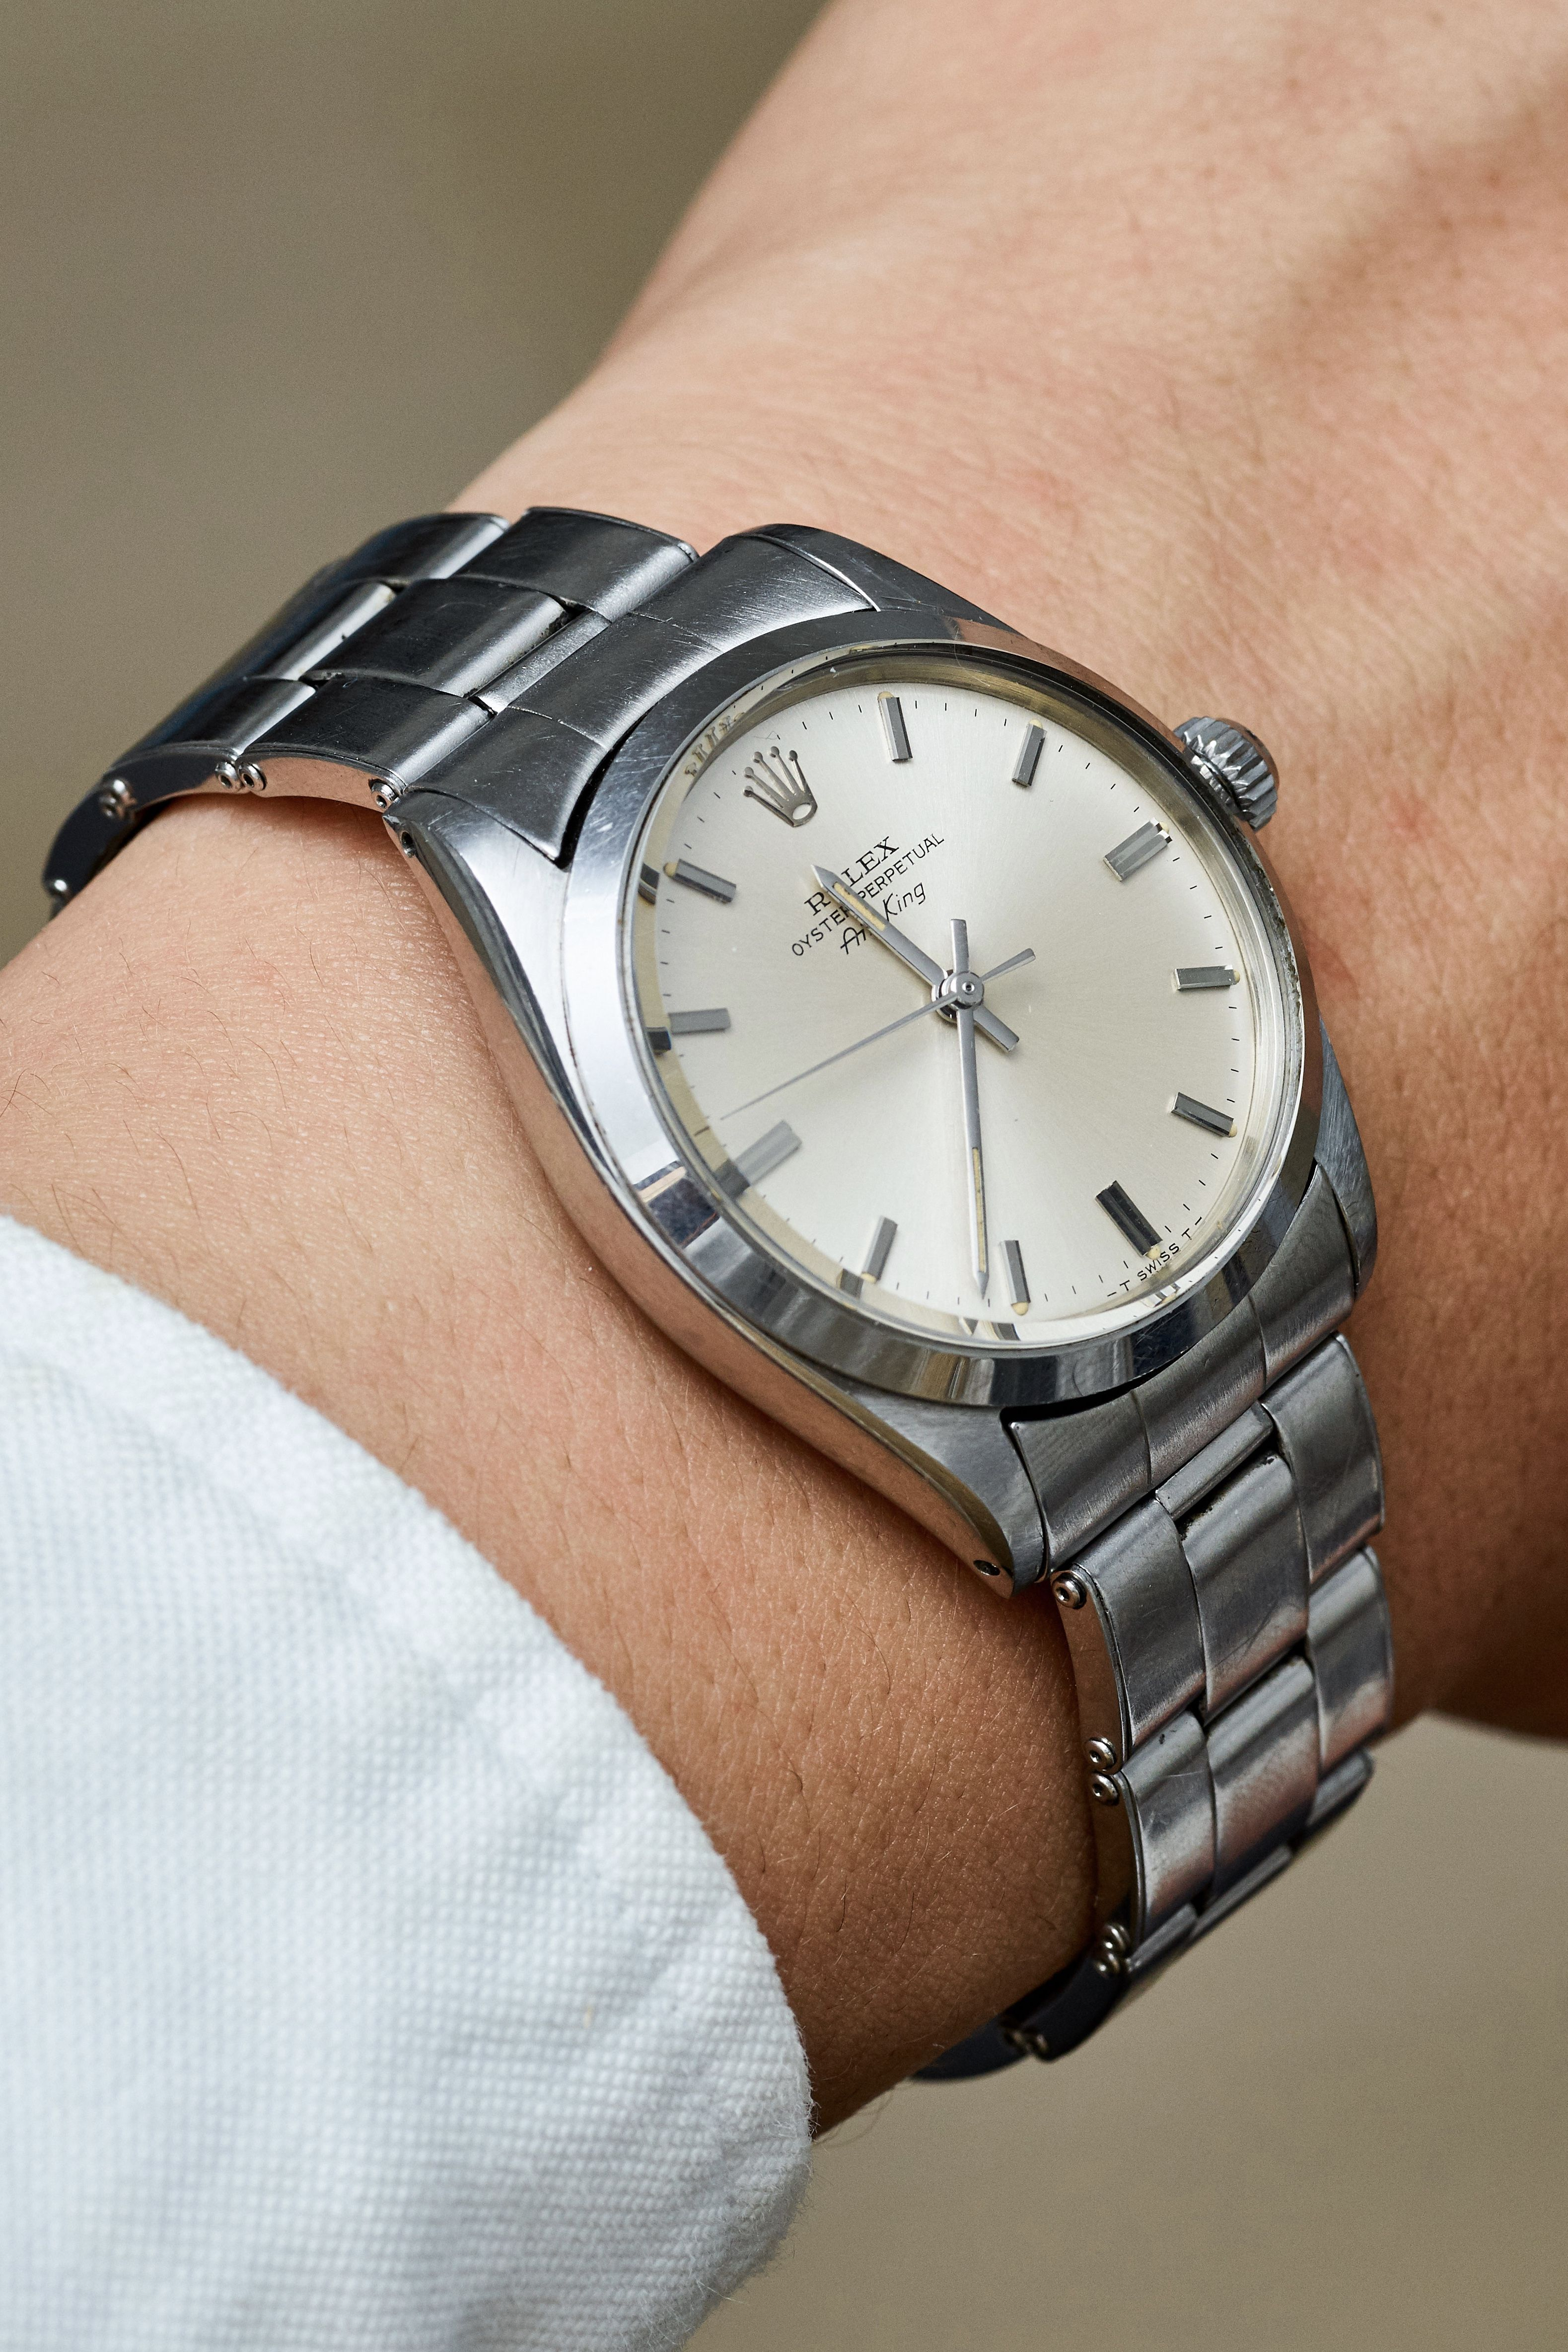 The Rolex airking was developed for pilots to wear. This